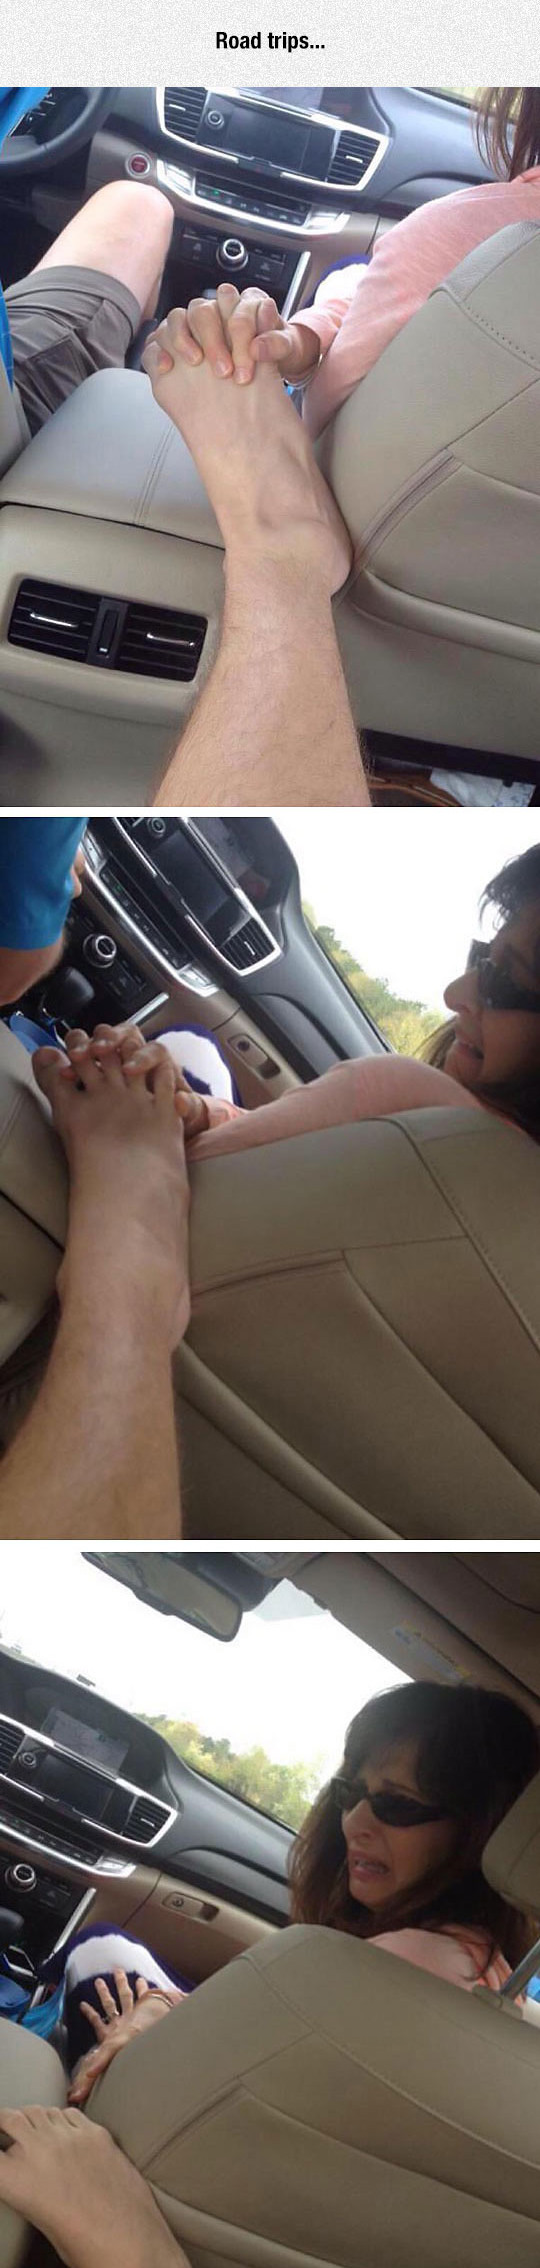 funny-holding-hands-foot-car